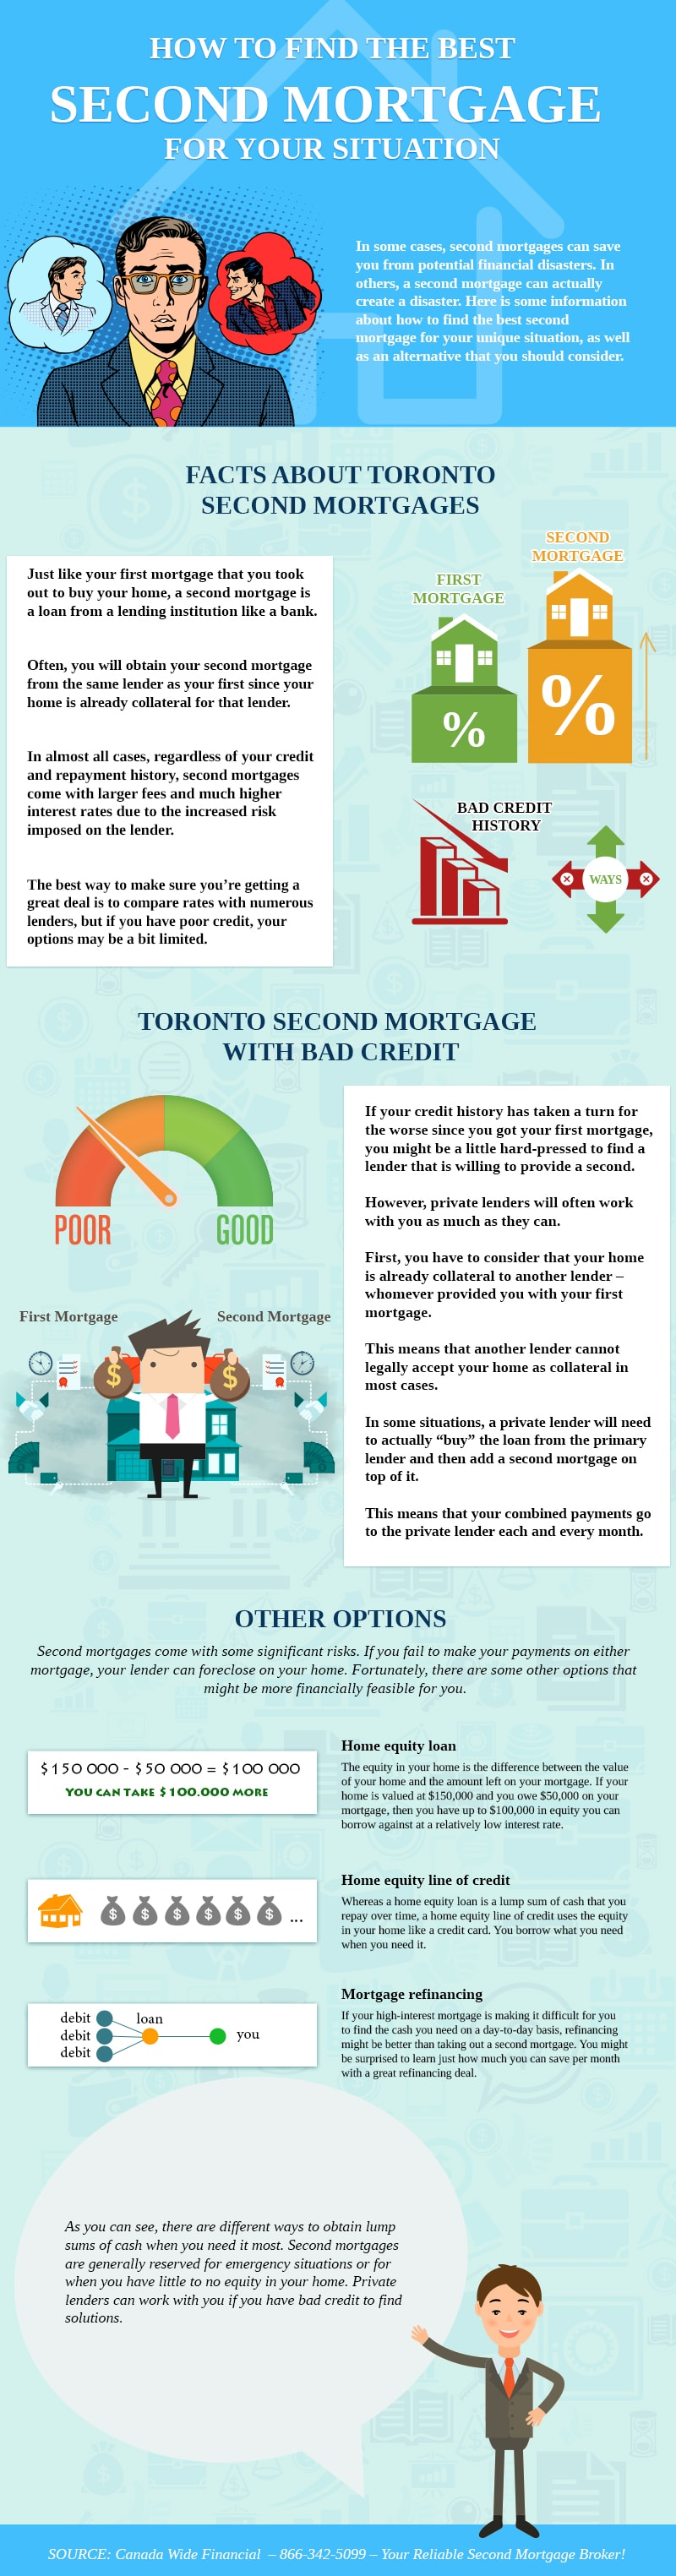 How to Find the Best Second Mortgage for Your Situation - Infographic